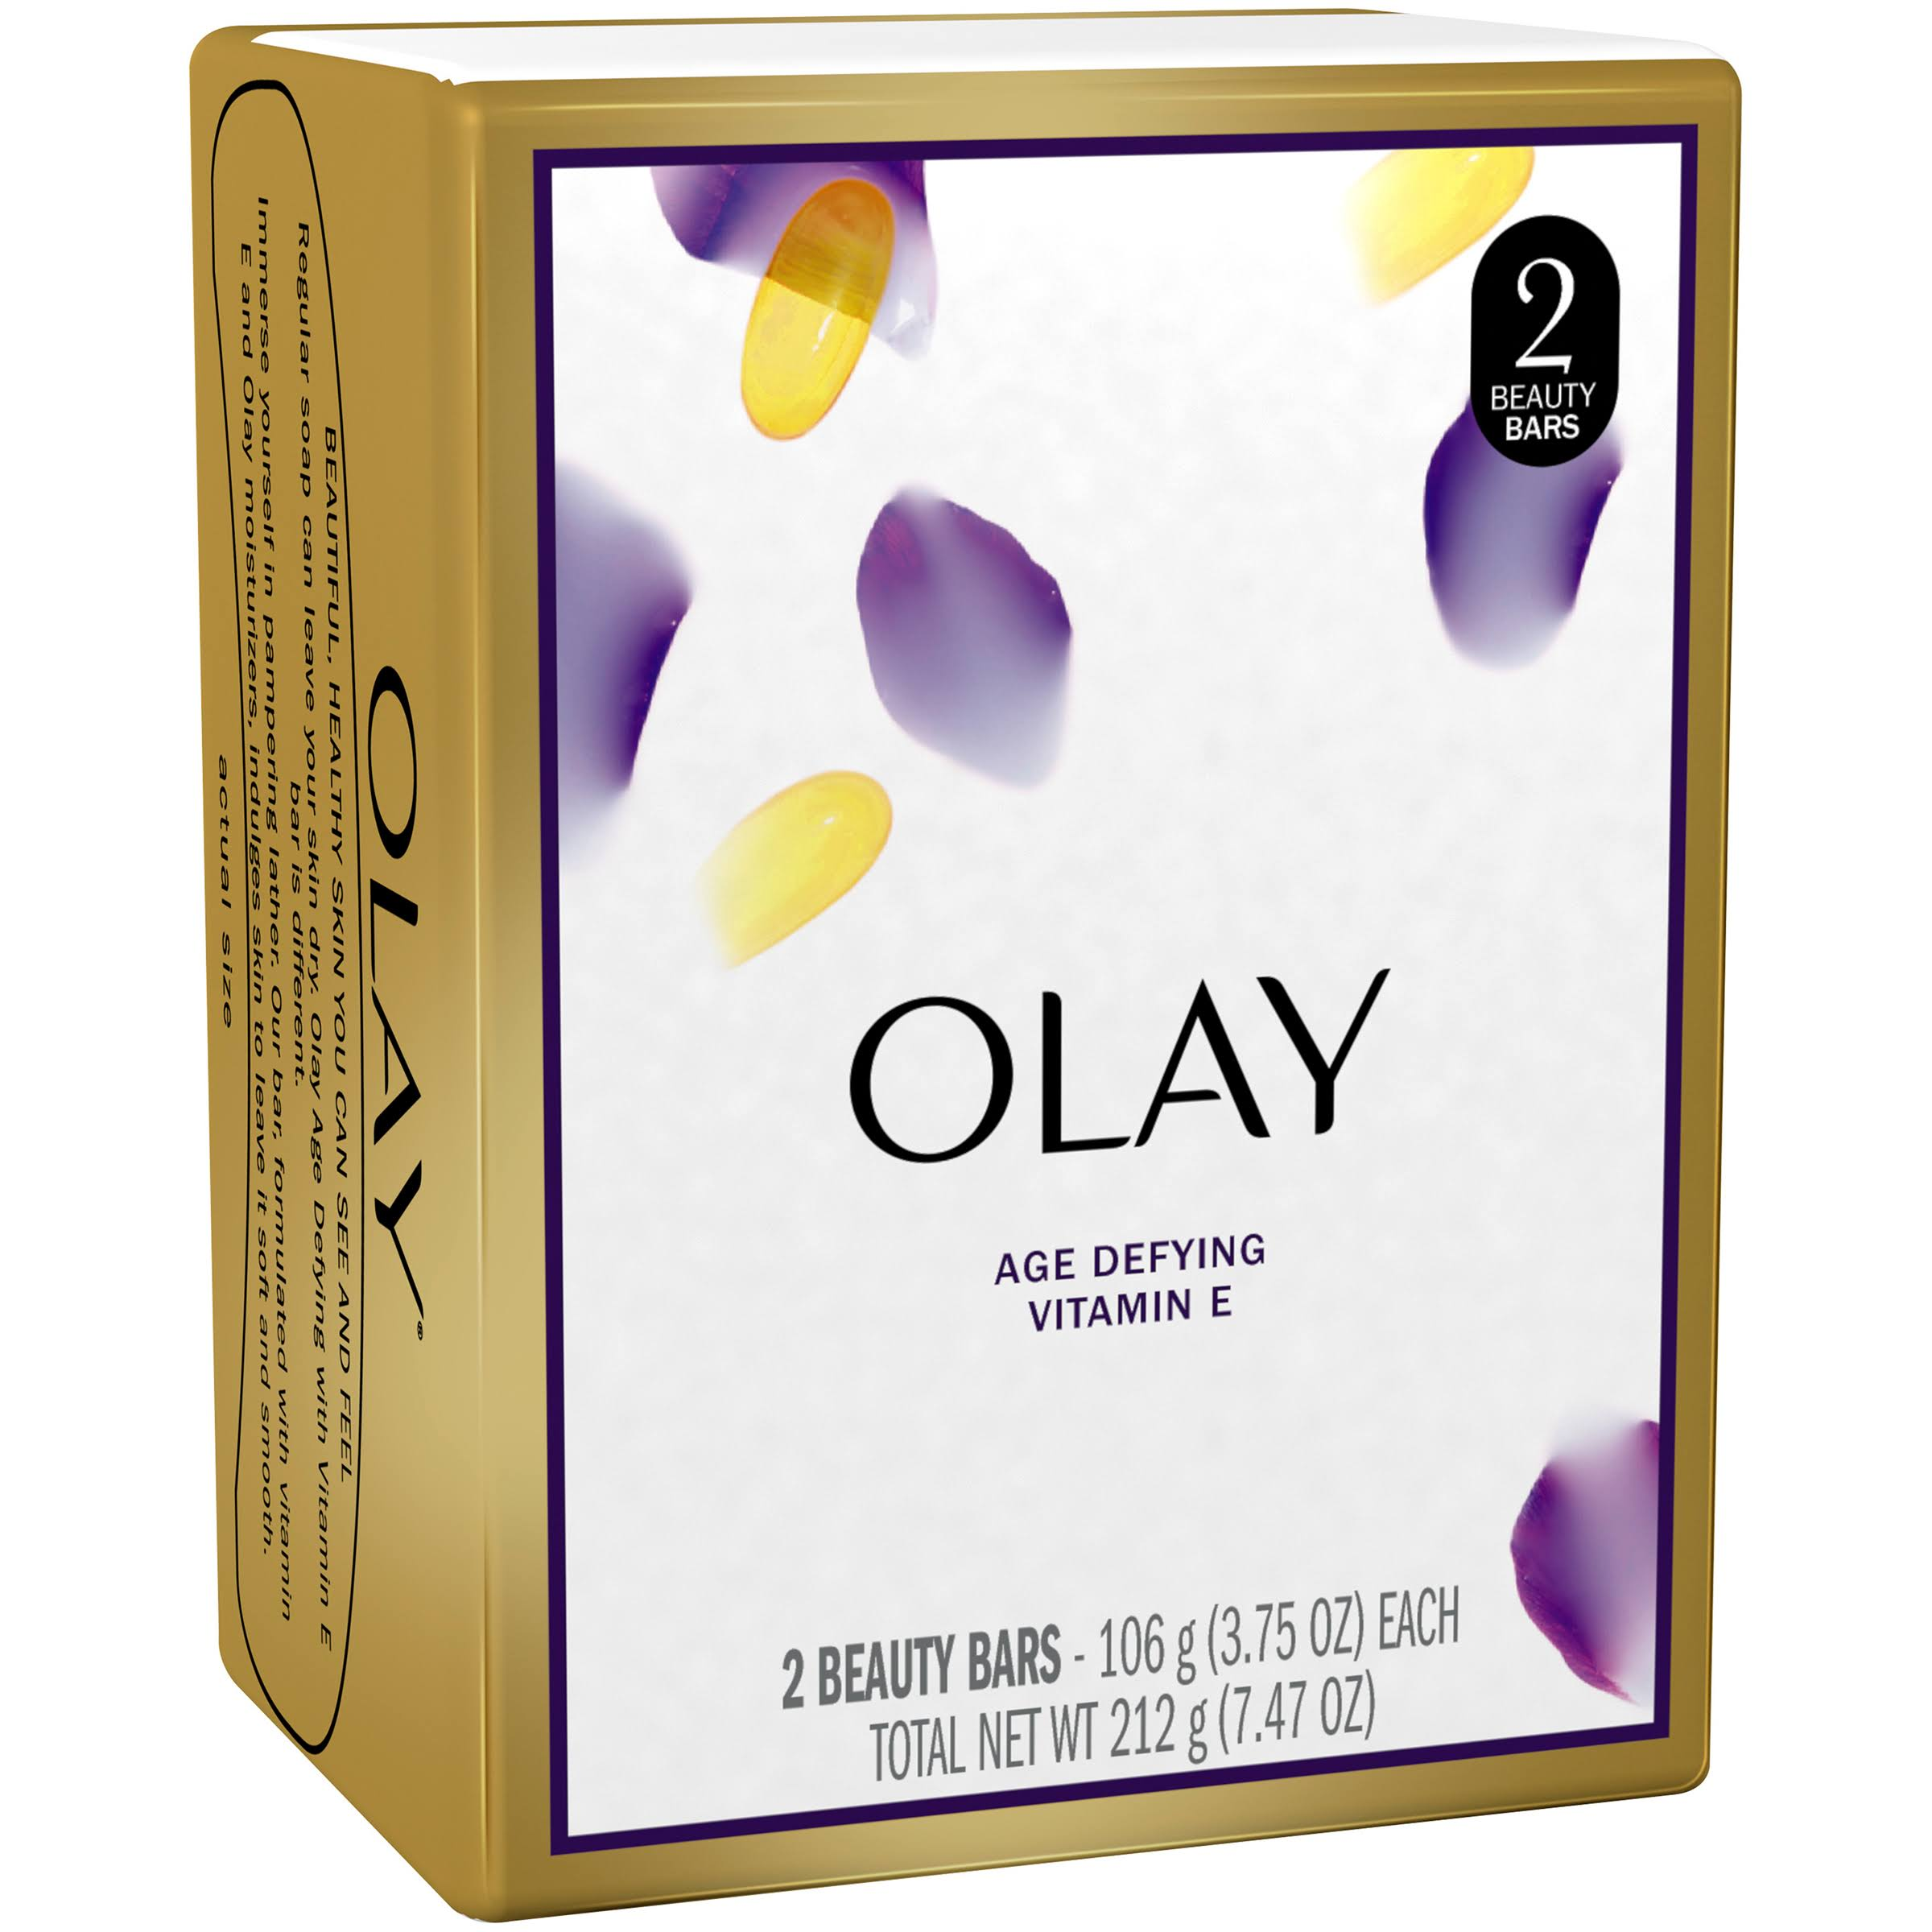 Olay Age Defying Beauty Bar - 2pk, 106g